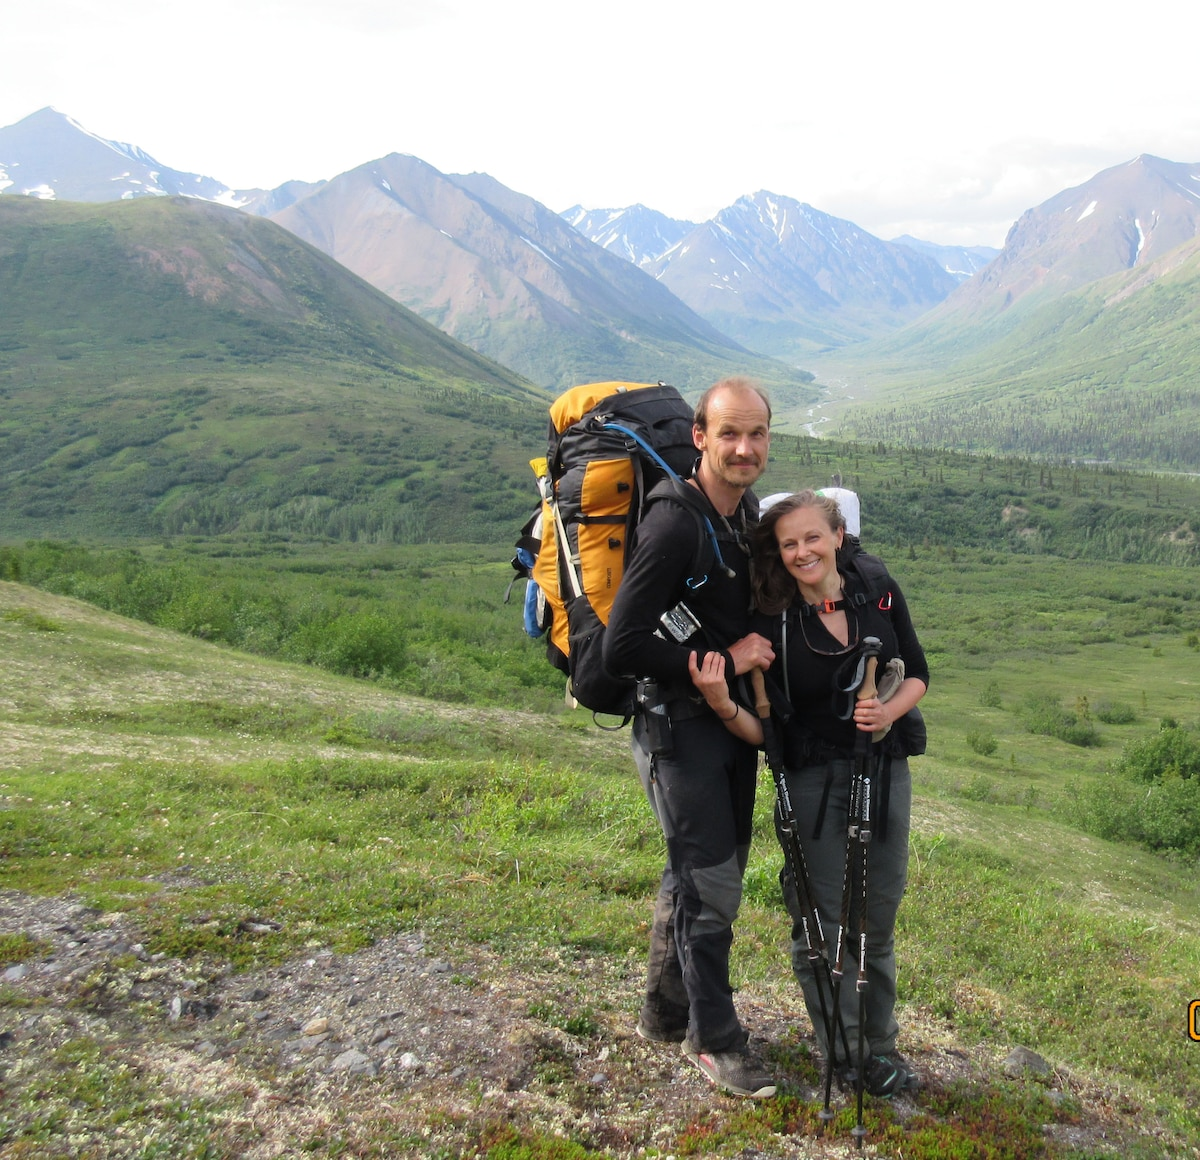 Thorsten And Prudence from Fairbanks